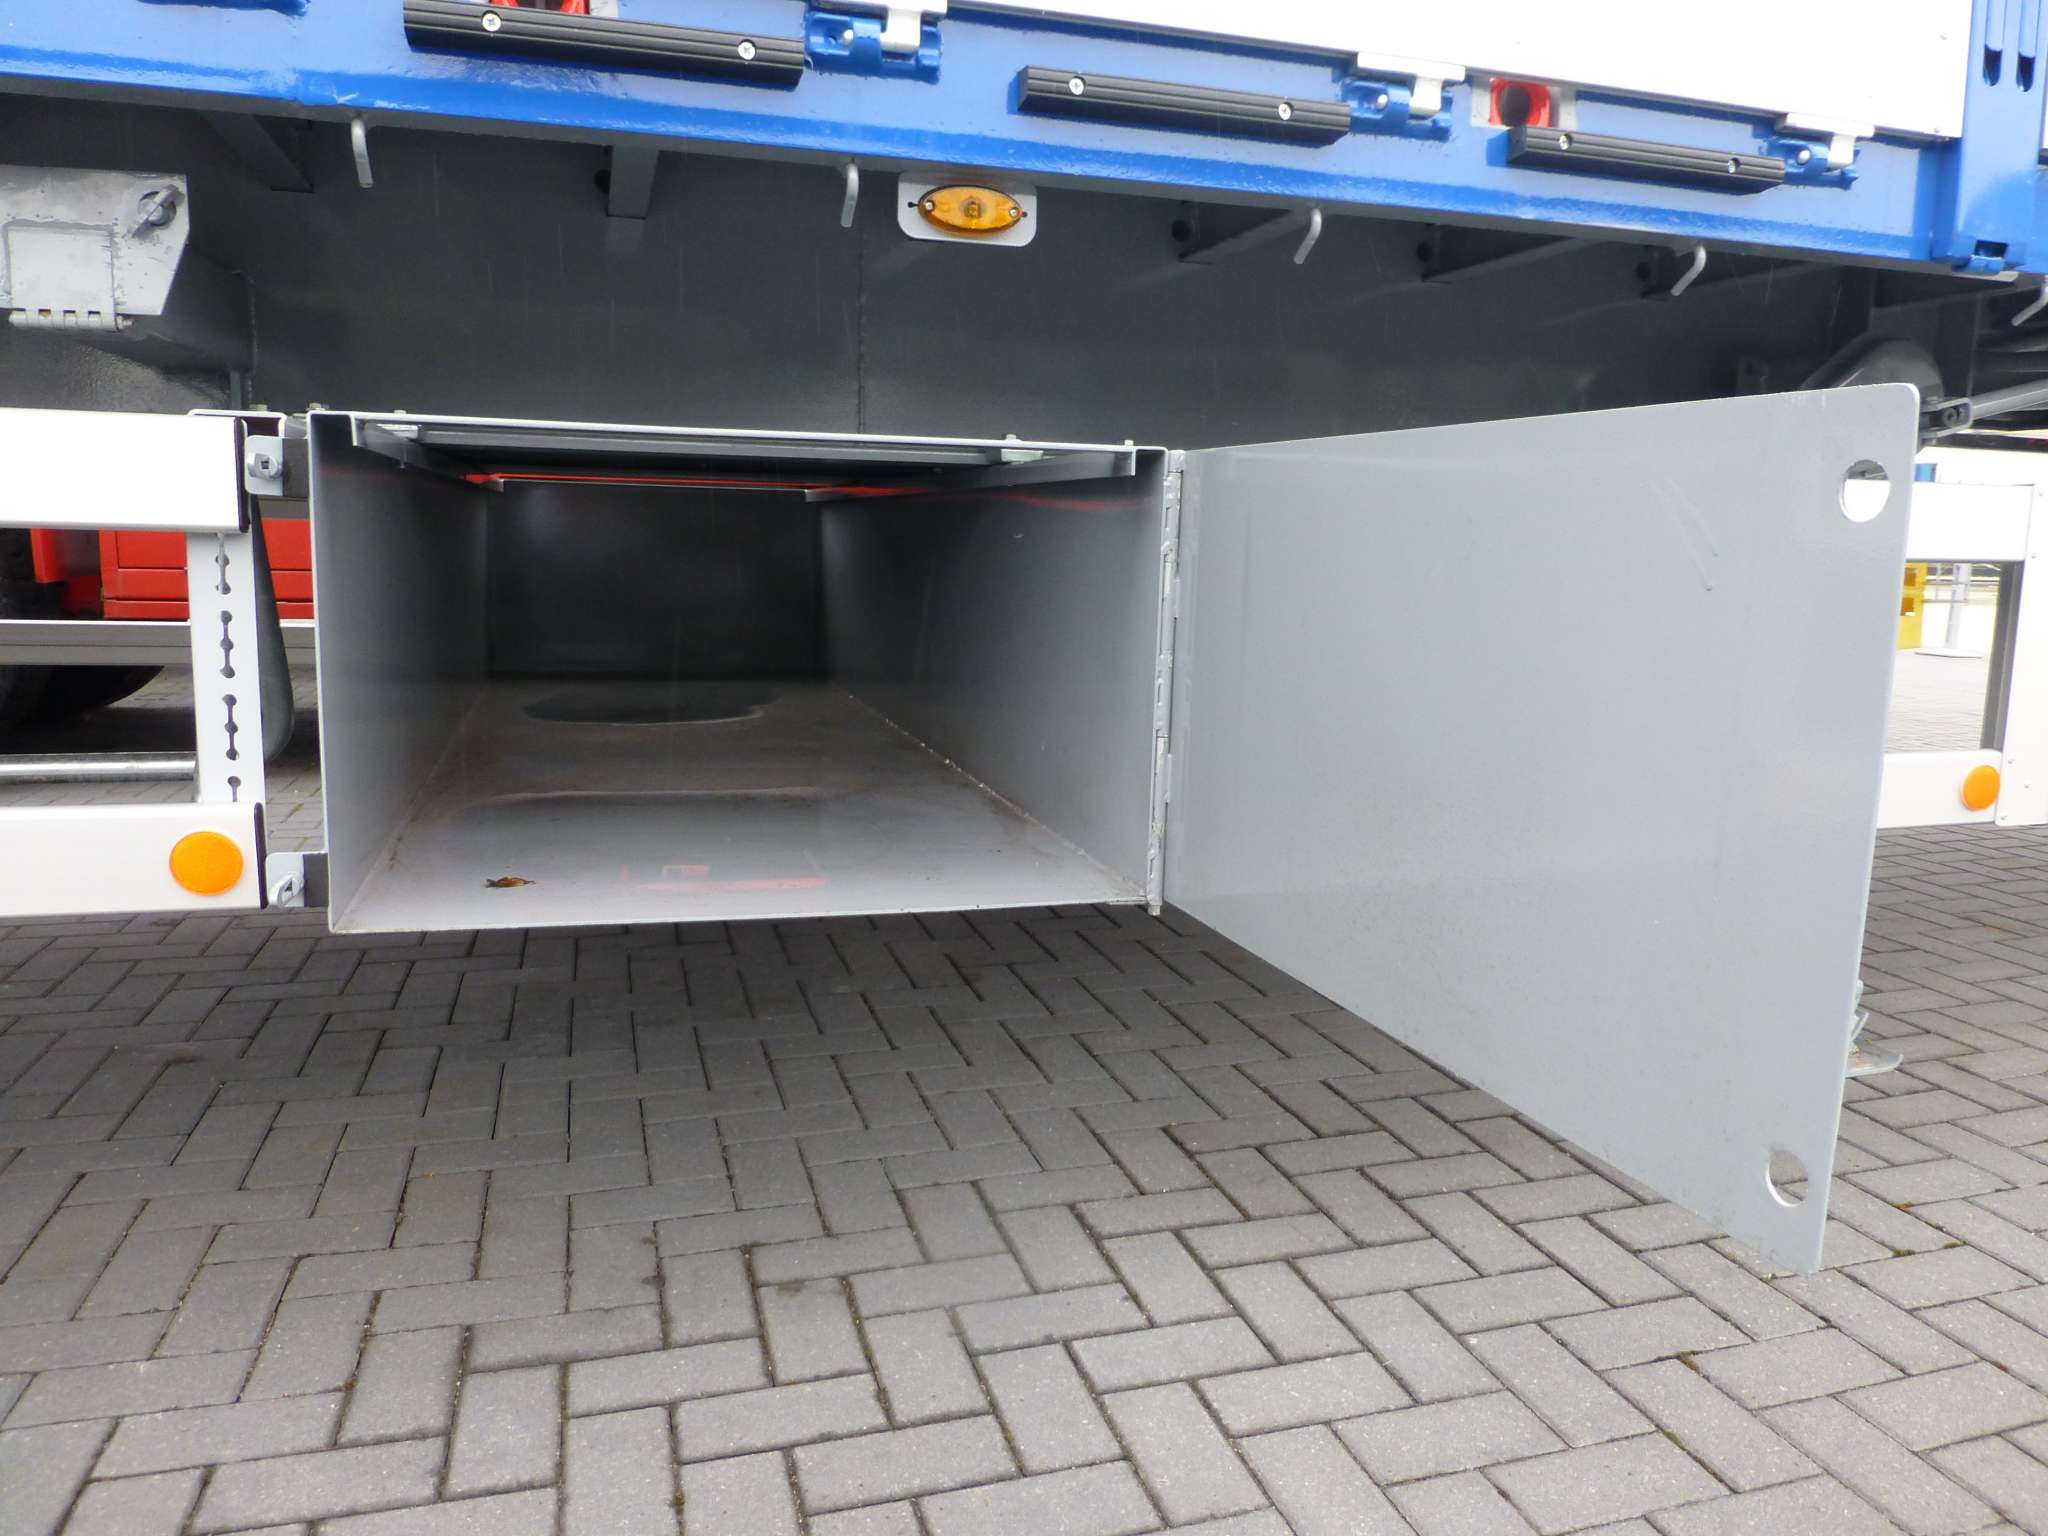 CITYT TRAILER // 1 AXLE // STEERED // PAYLOAD 22,5 TONS